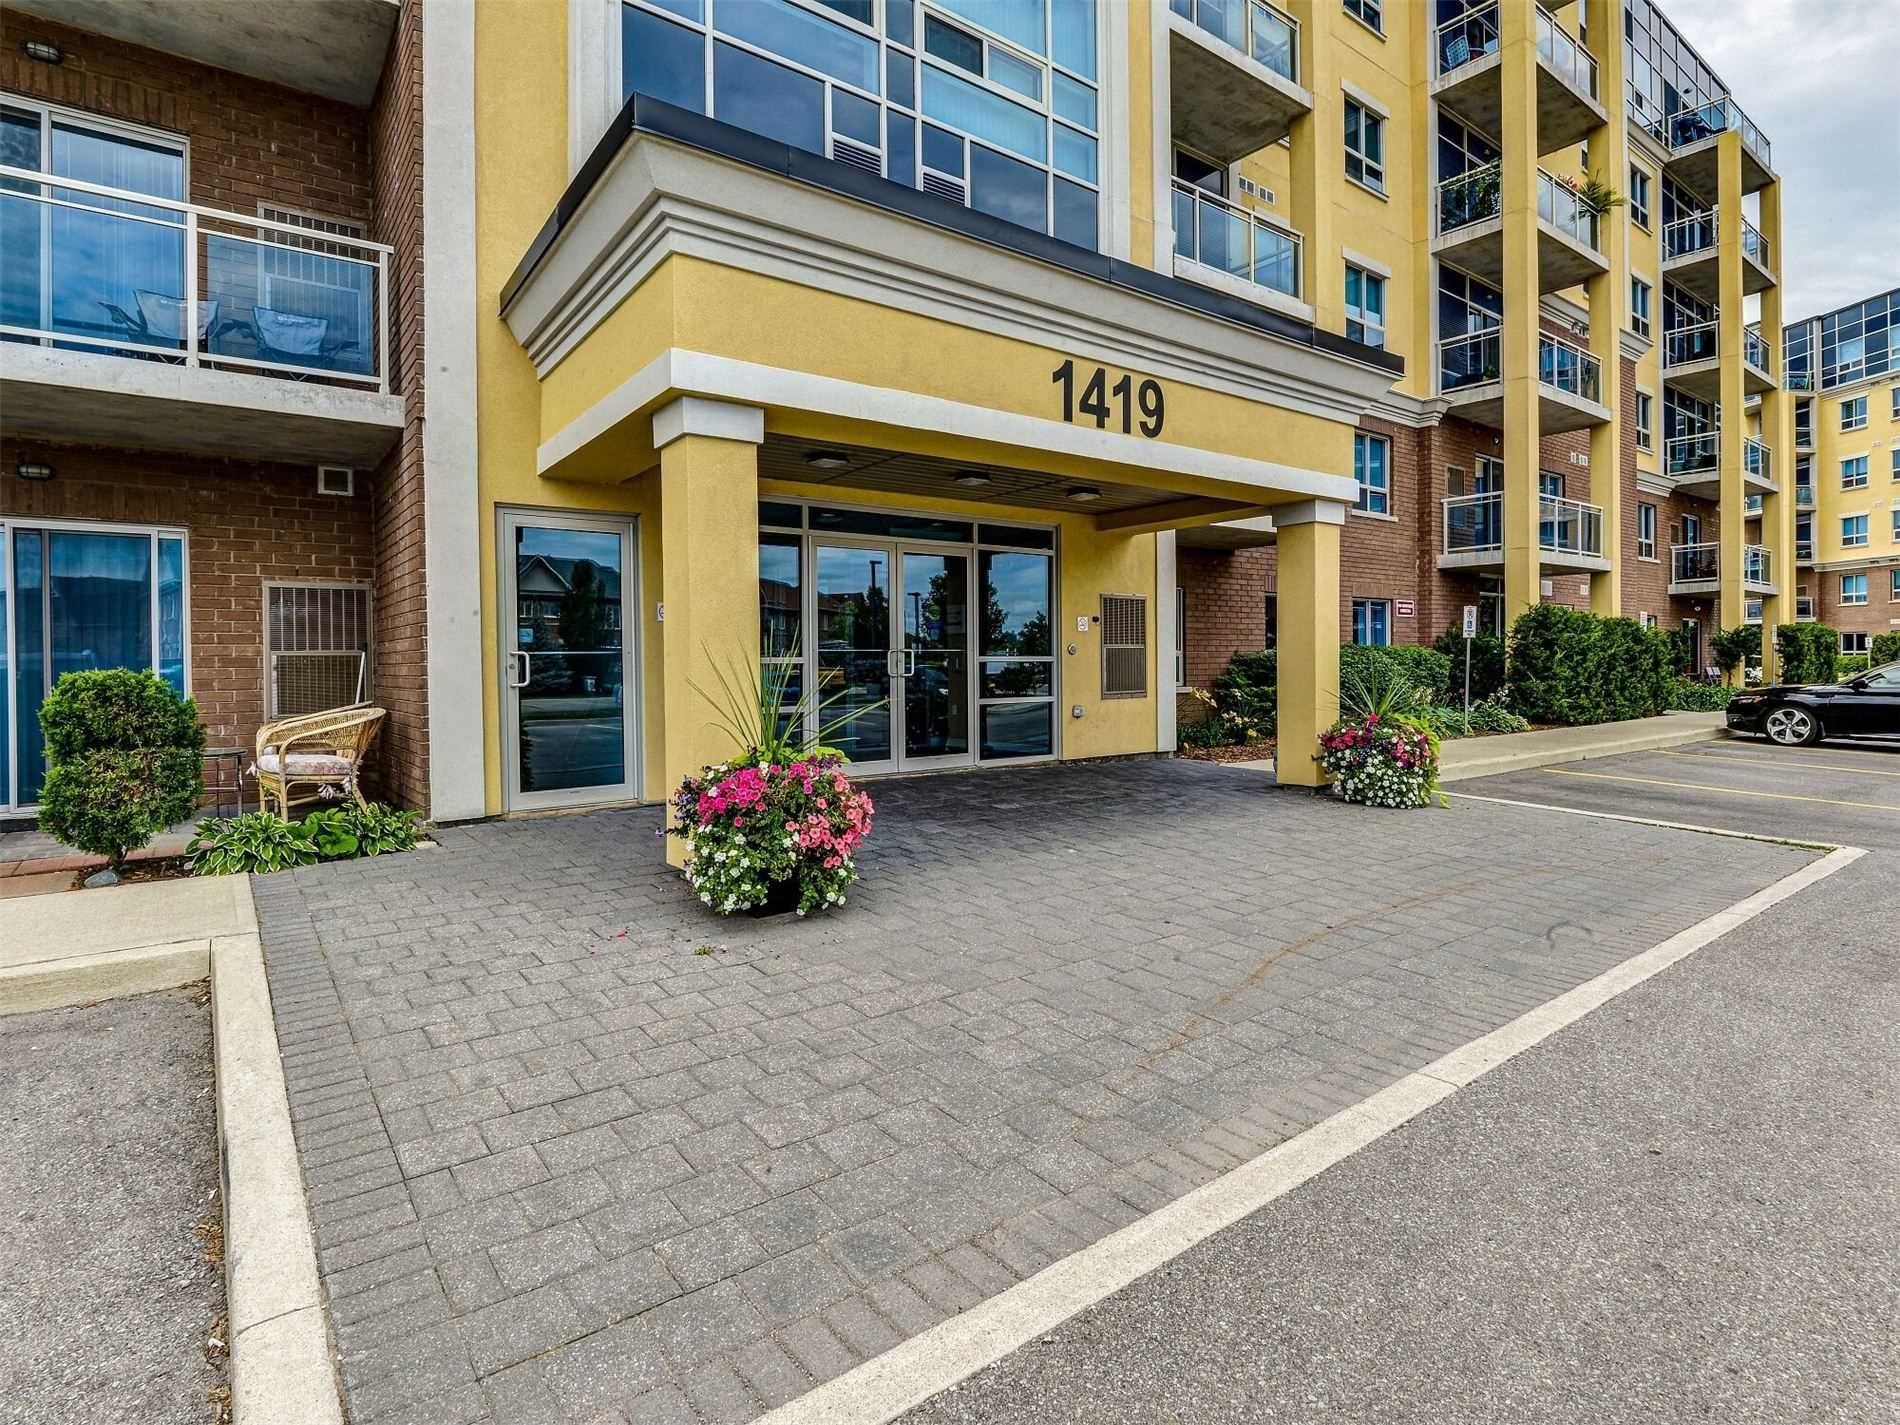 Main Photo: 601 1419 Costigan Road in Milton: Clarke Condo for sale : MLS®# W5152191